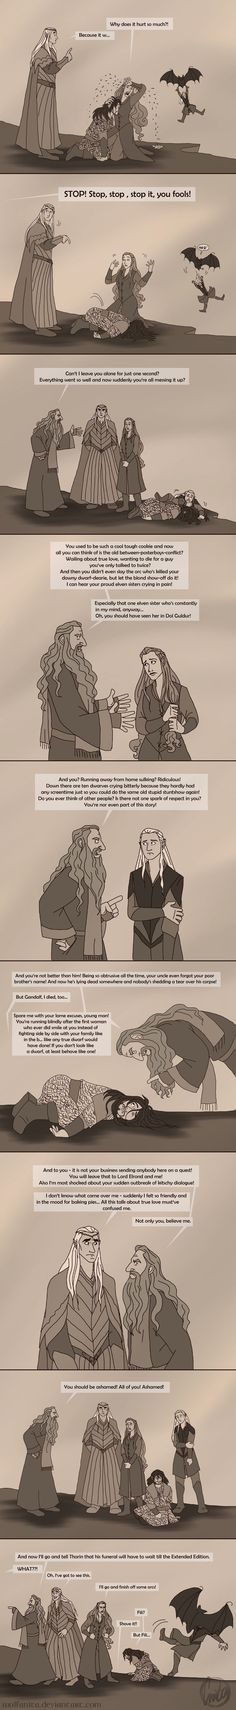 This sums up my feelings about the last Hobbit movie exactly.